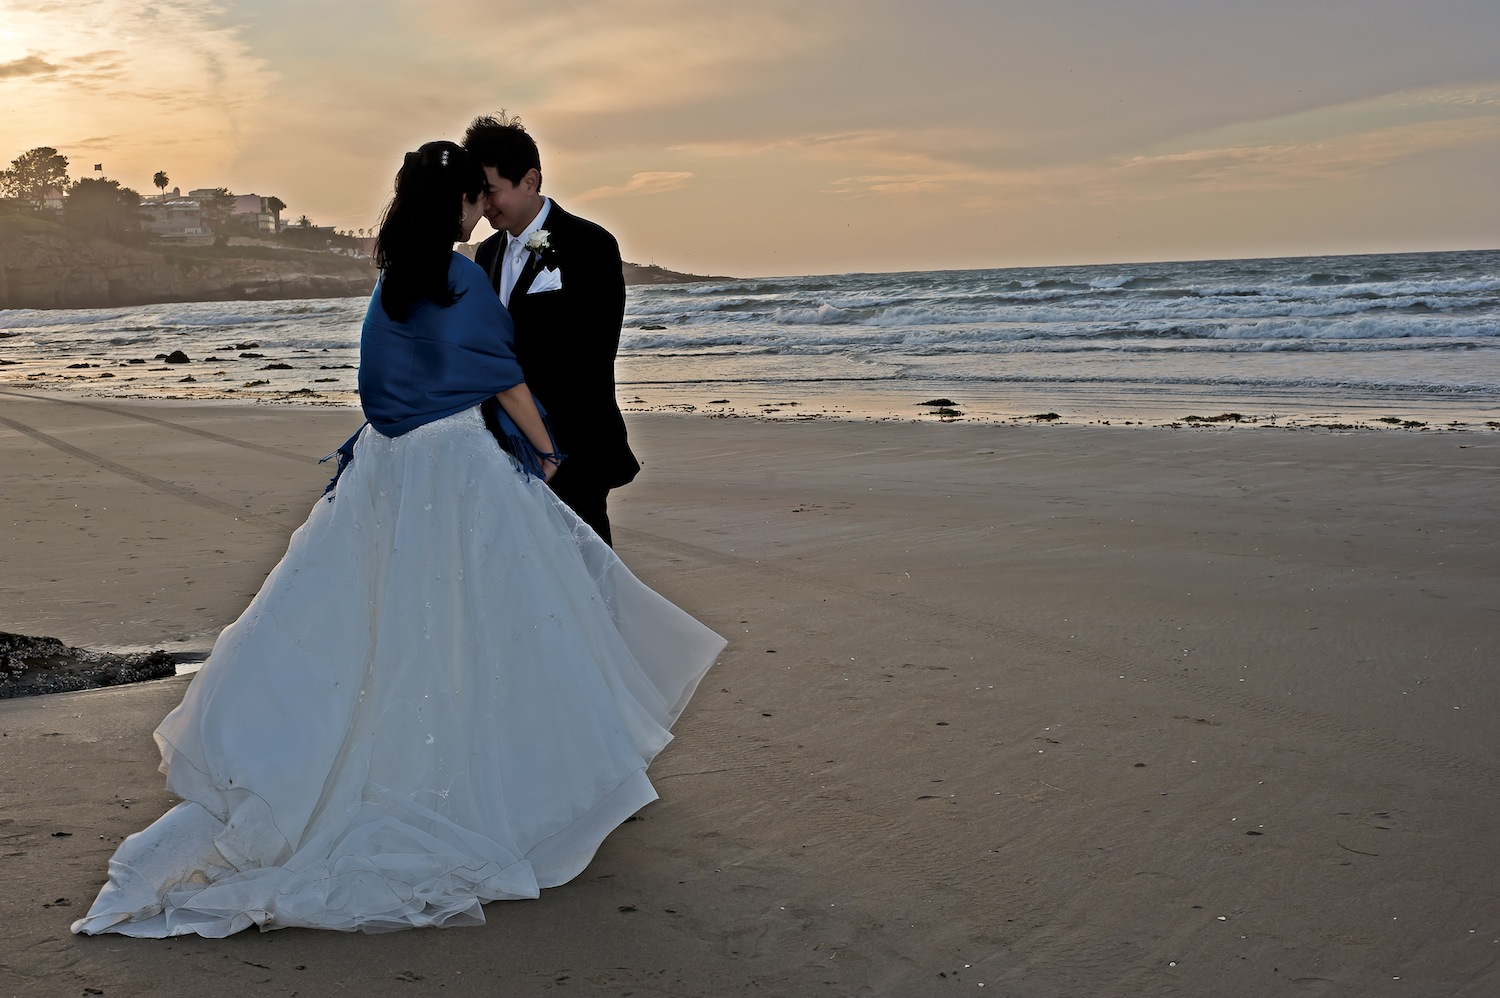 Wedding Photography | La Jolla CA | Mel and Tim Photography